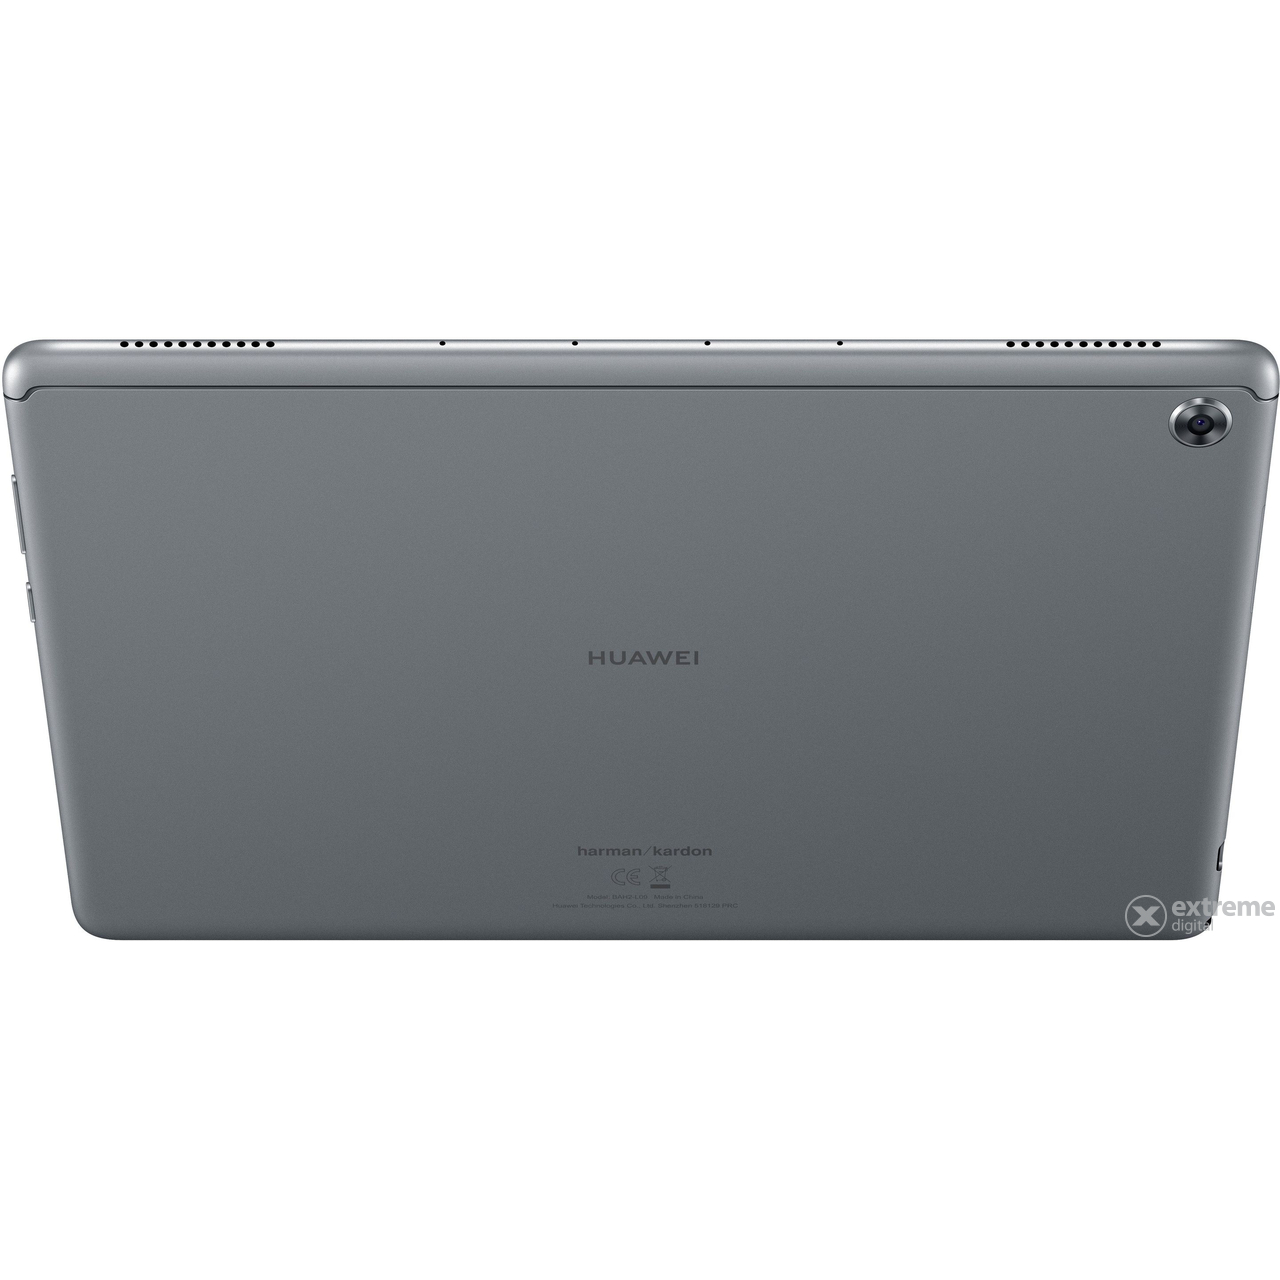 Huawei MediaPad M5 Lite 10 LTE 32GB tablet, Gray (Android)